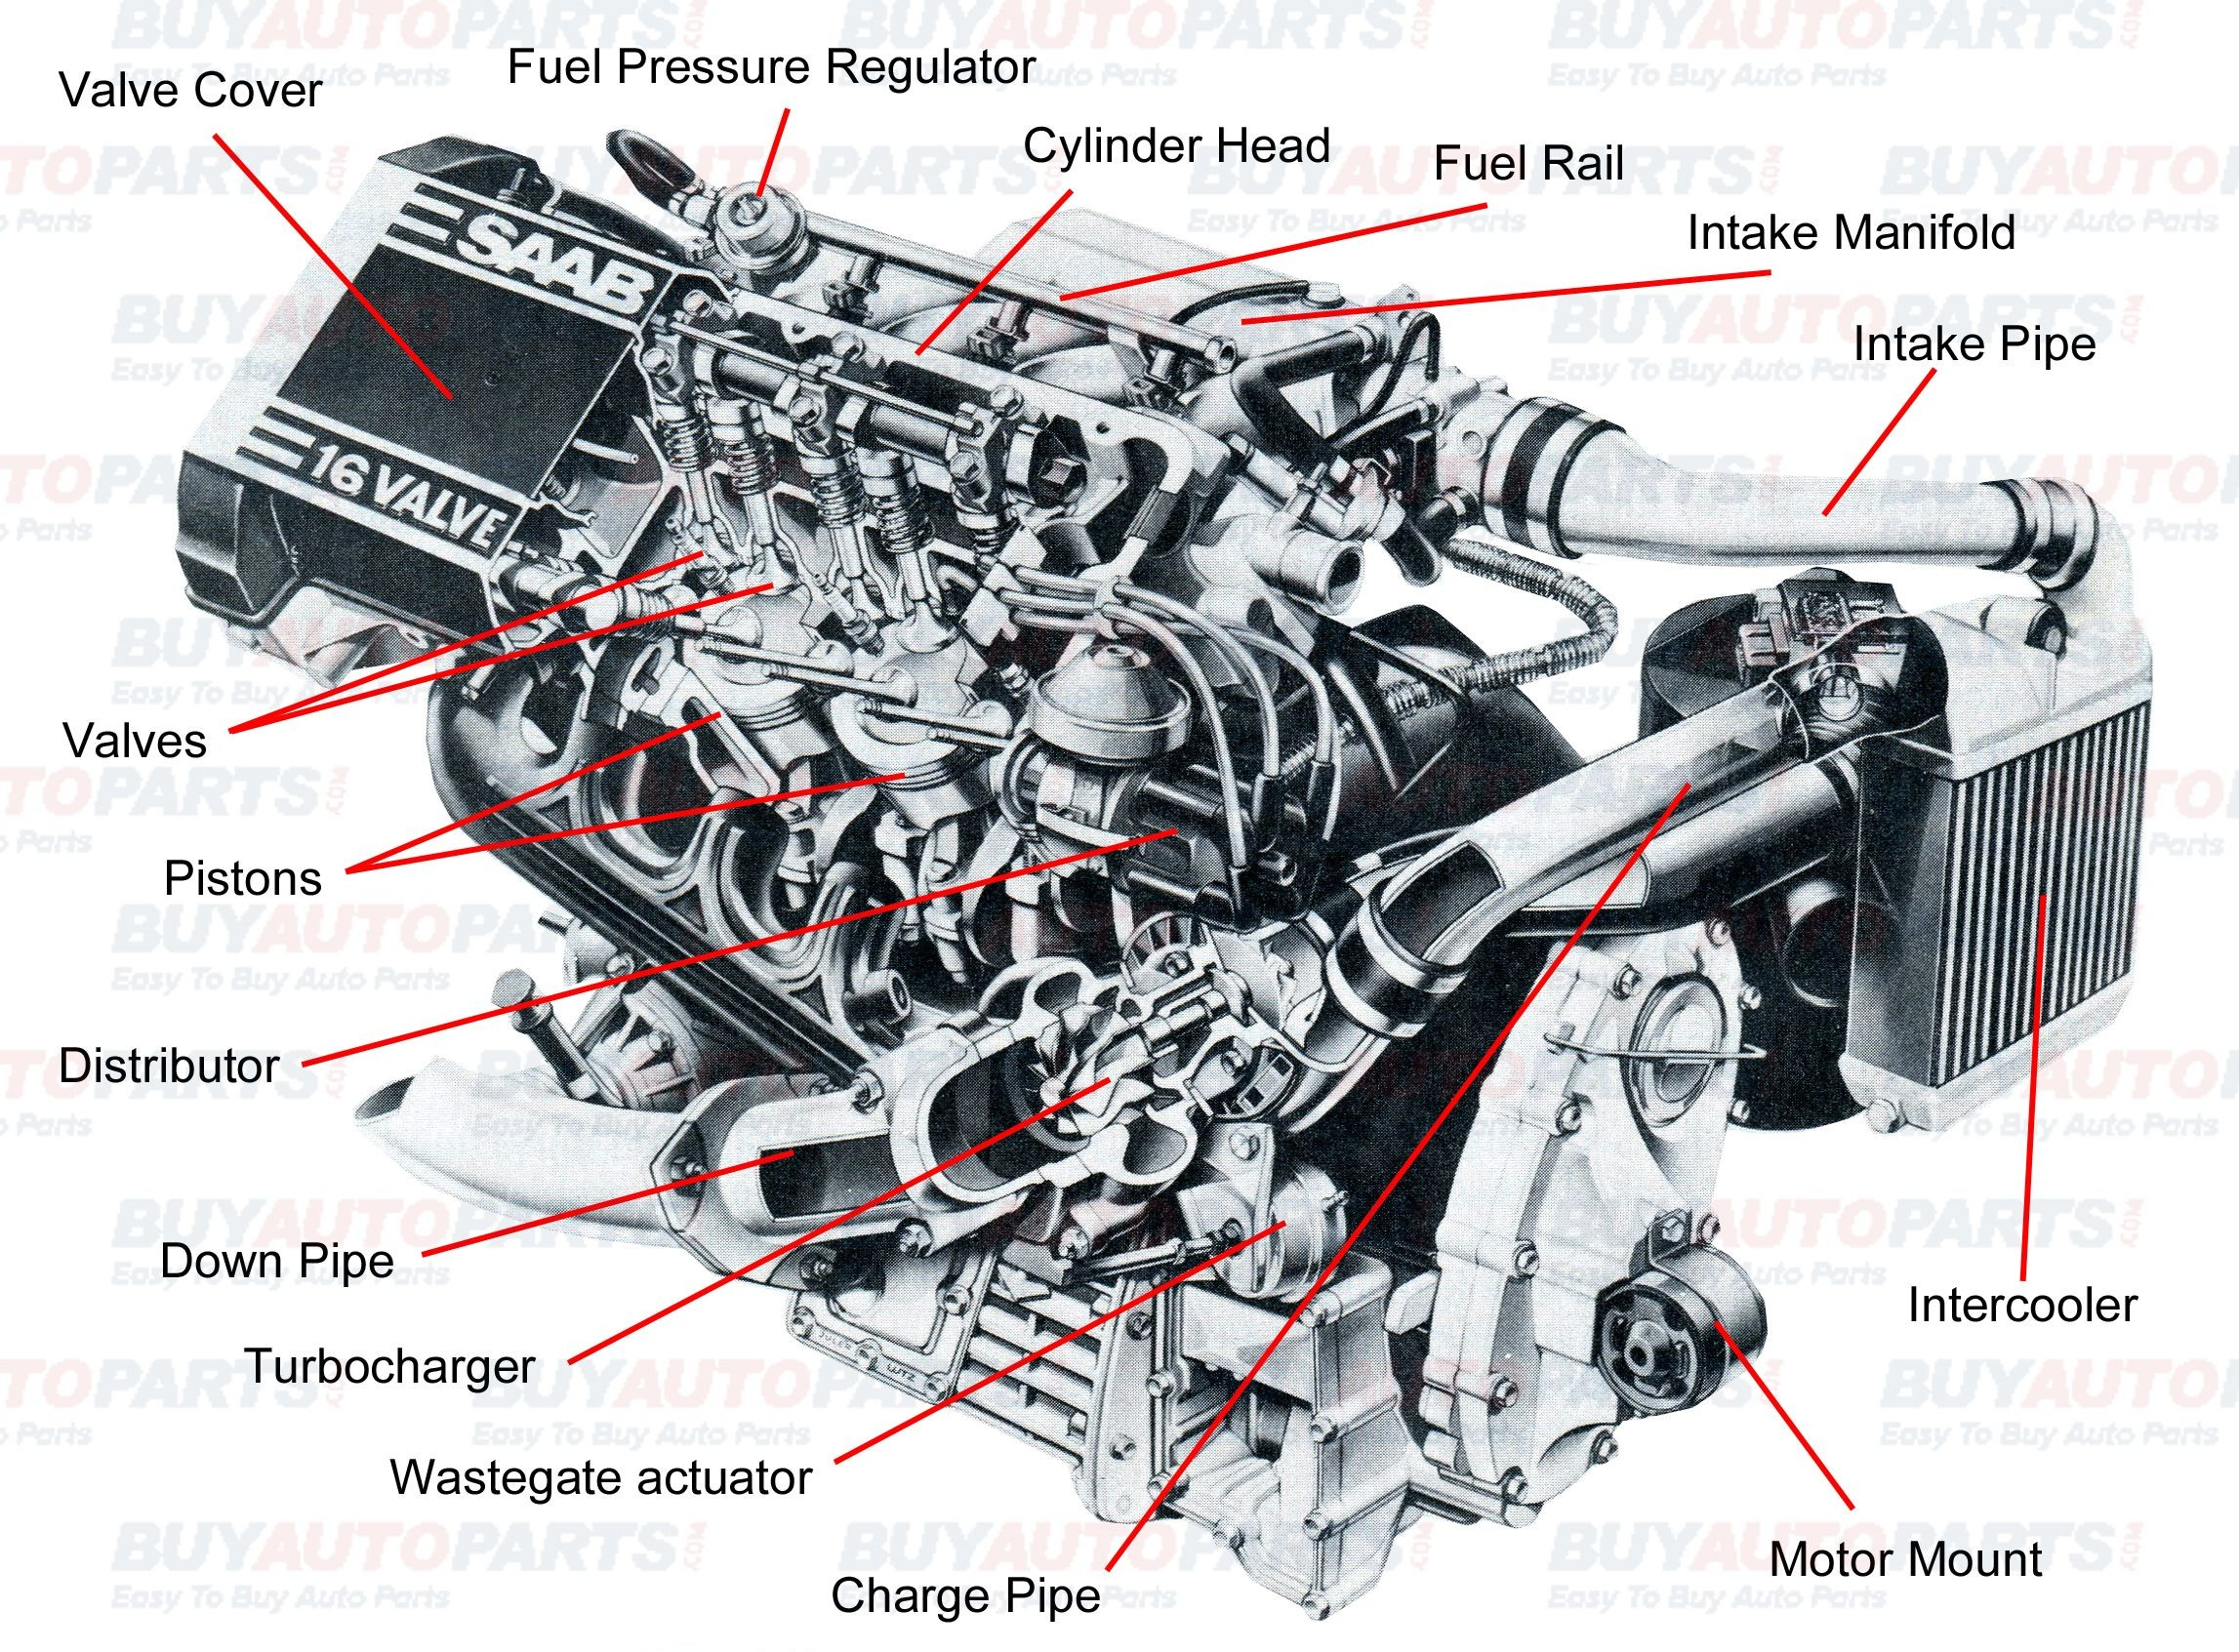 Jeep Engine Parts Diagram 4r100 Transmission Valve Body E4od All Internal Bustion Engines Have The Same Basic Ponents Of